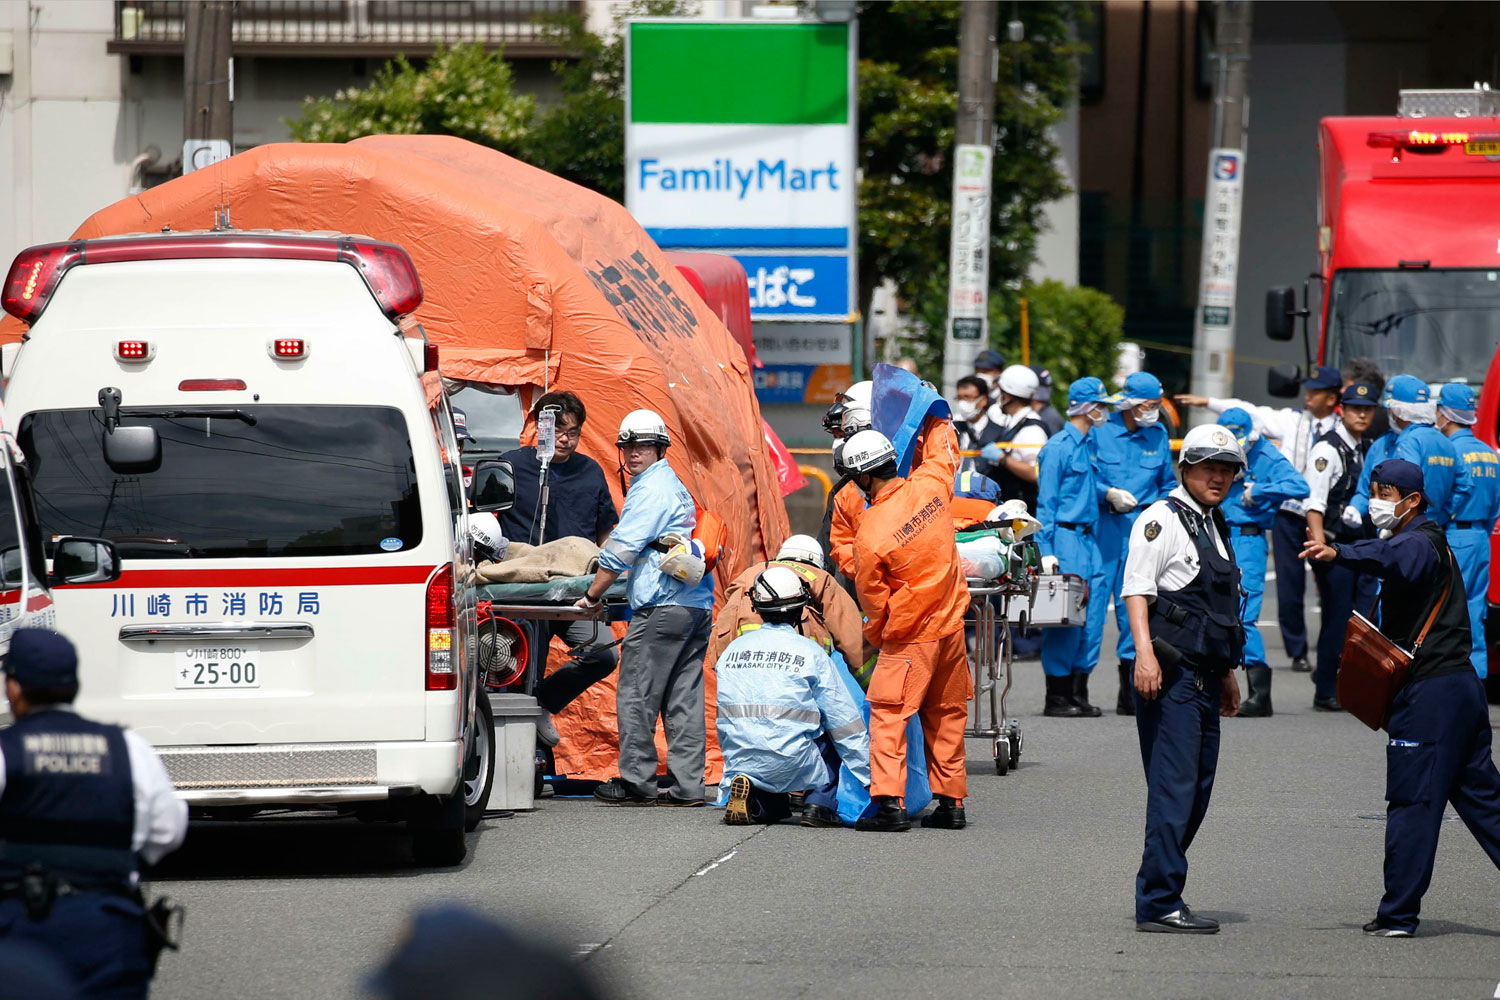 Rescuers work at the scene of an attack in Kawasaki city near Tokyo on Tuesday. (Kyodo News via AP photo)